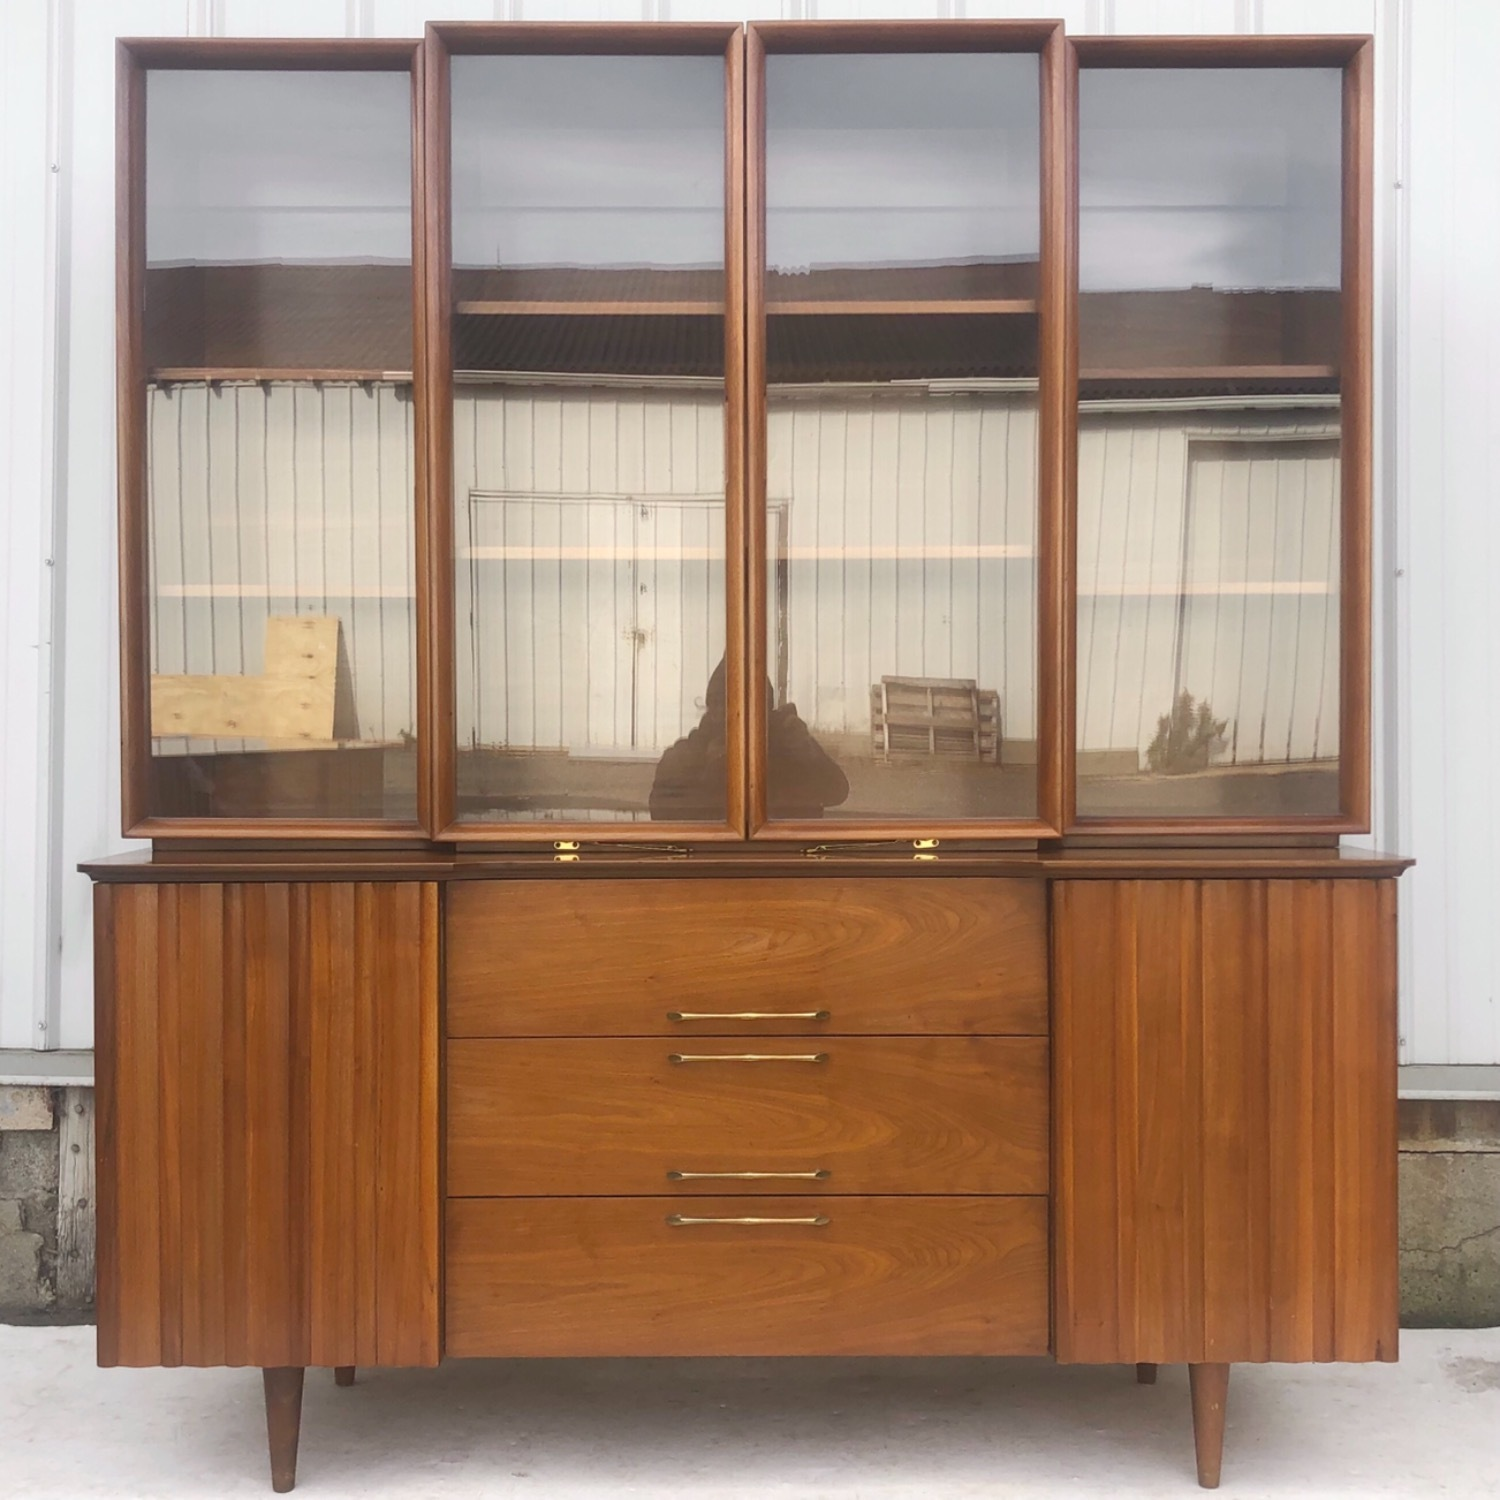 Mid-Century Modern Sideboard With Display Topper - image-5